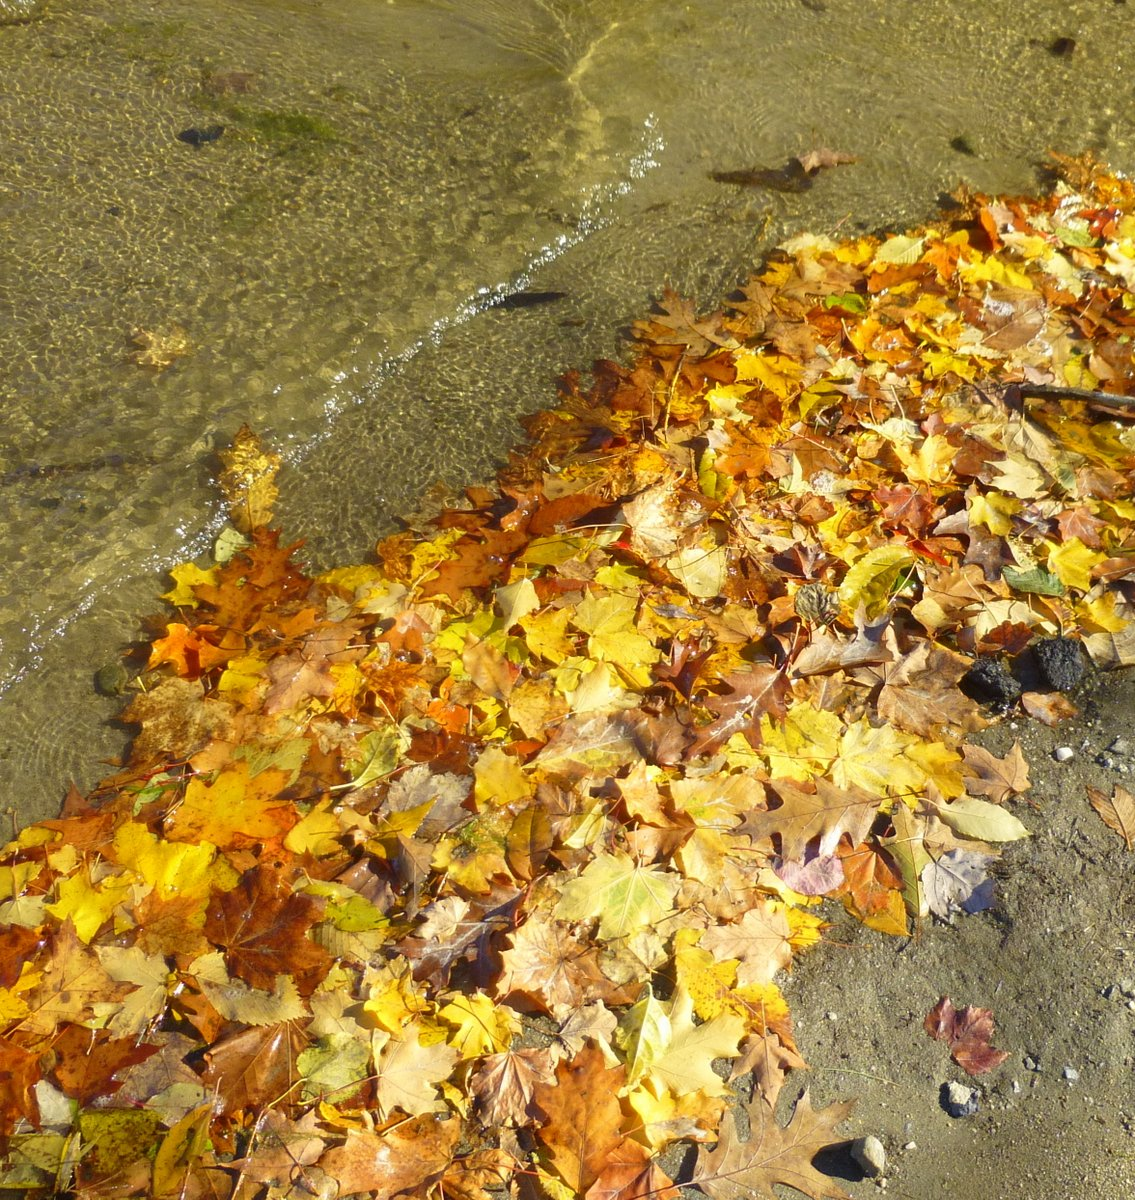 15. Washed Up Leaves